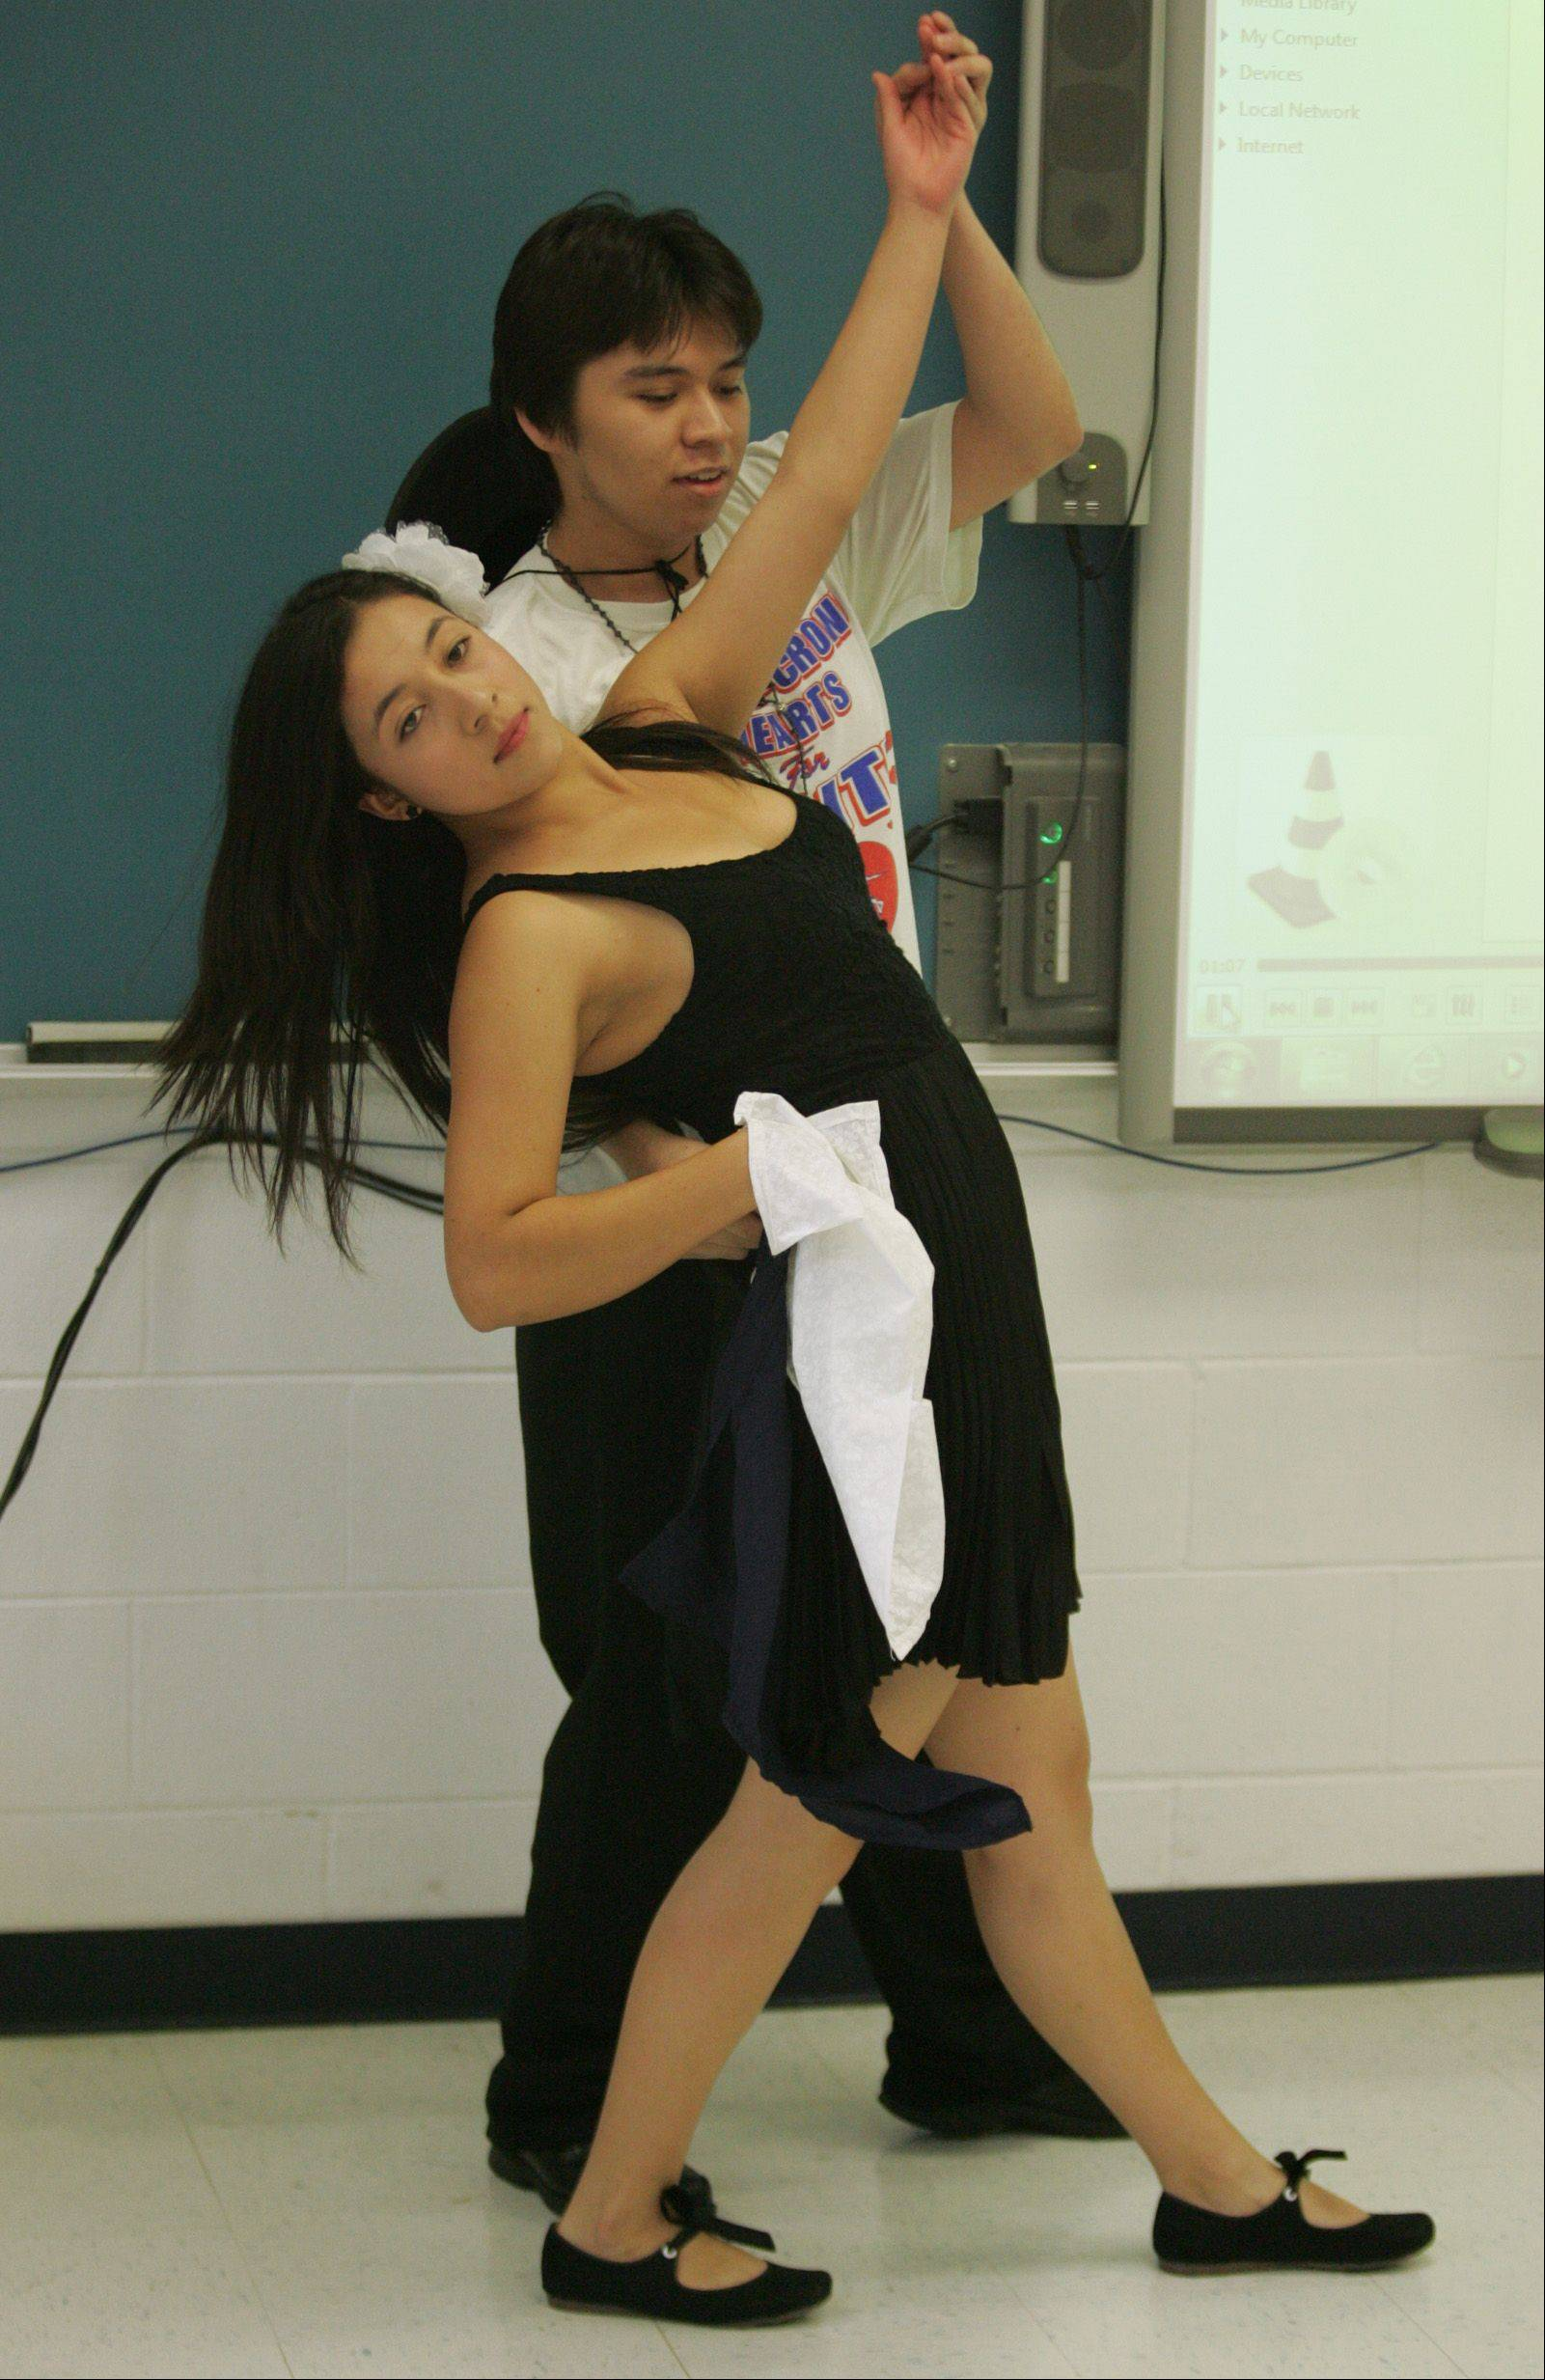 Dundee-Crown seniors Veronica Carrillo and Victor Alvarez rehearse an Argentine dance number Thursday in preparation for the multicultural festival Sunday.